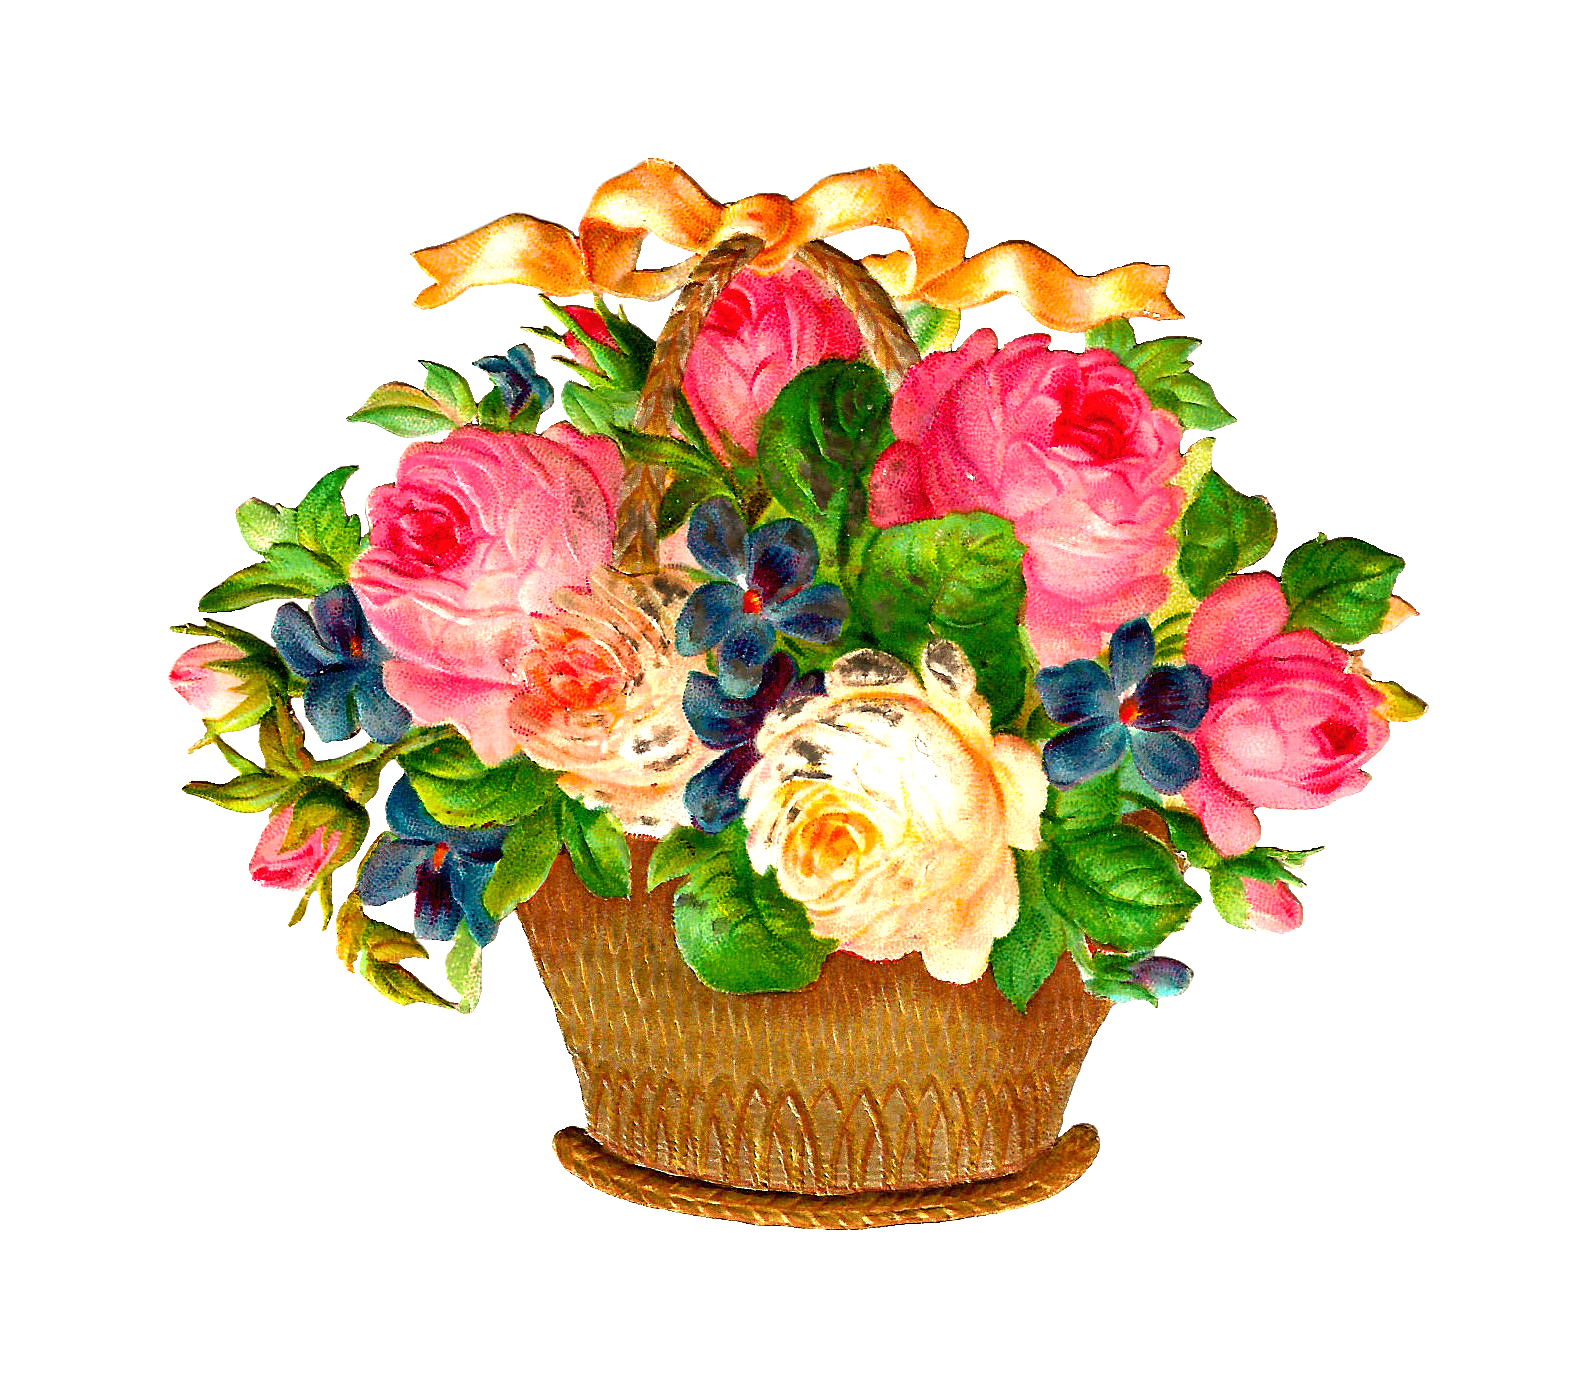 Flower baskets clipart image free download Antique Images: Free Flower Basket Graphic: Pink and White Roses and ... image free download